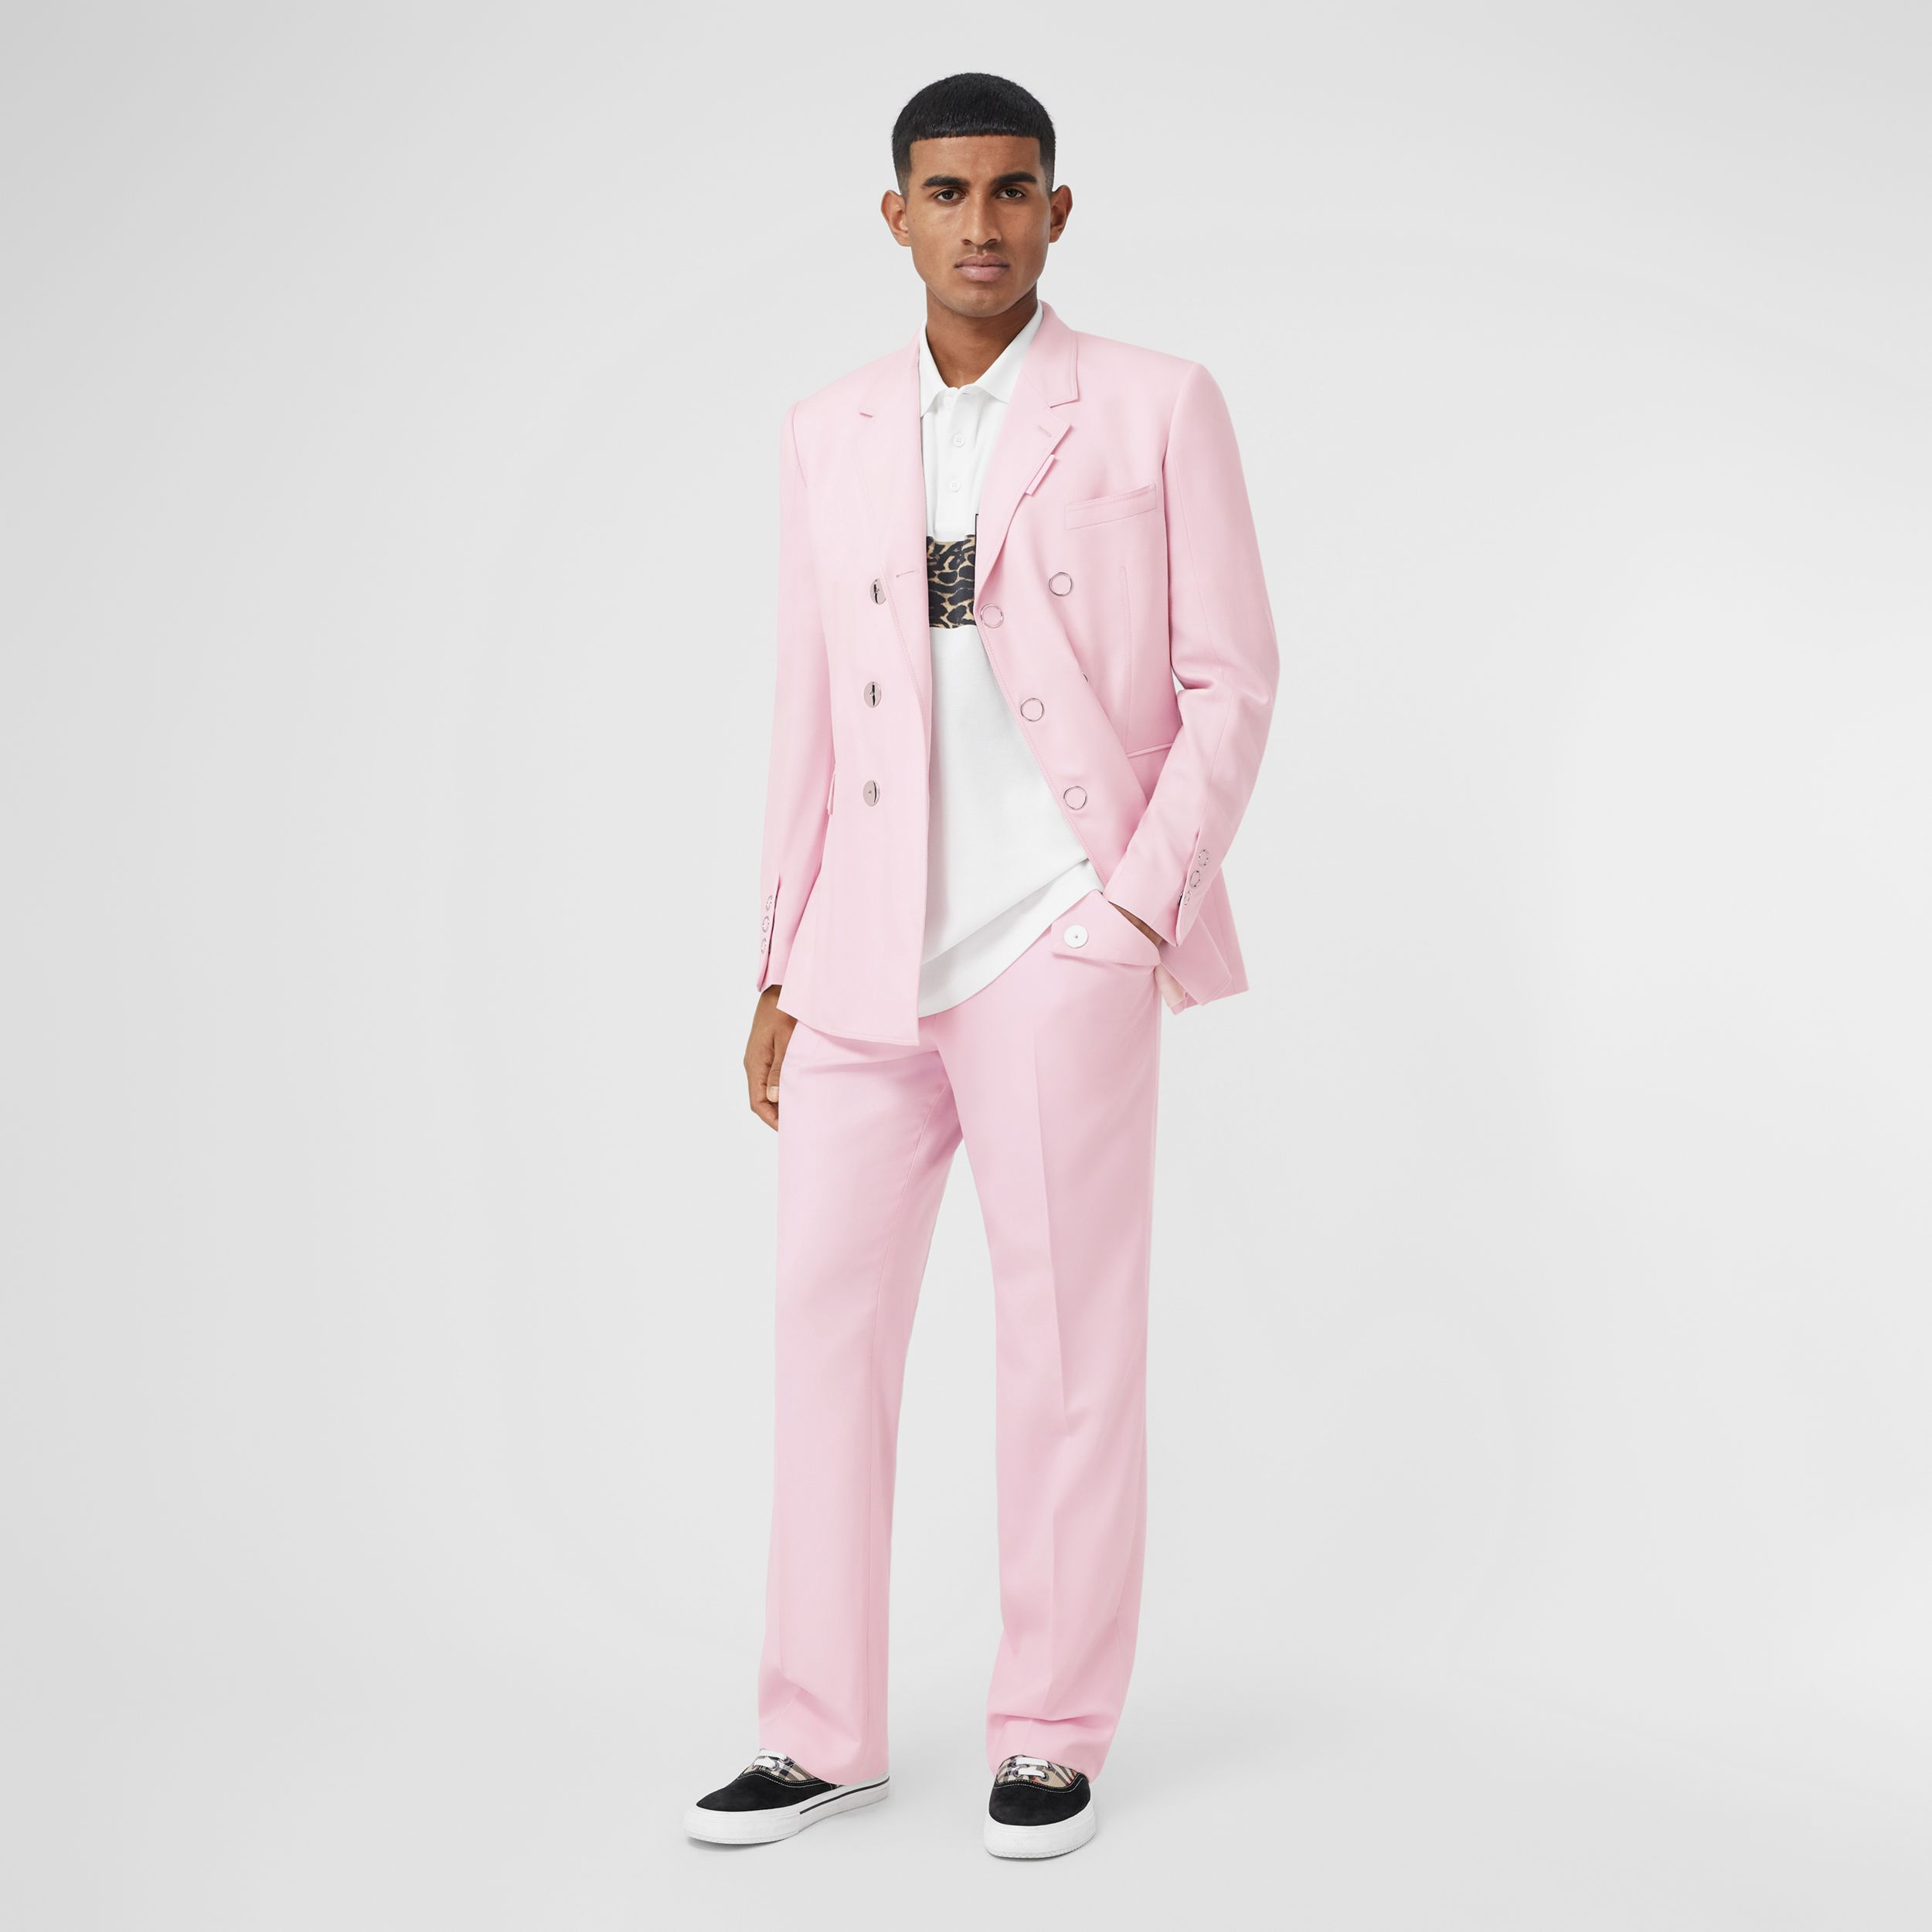 Tumbled Wool Wide-leg Tailored Trousers in Candy Pink - Men | Burberry Hong Kong S.A.R - 1